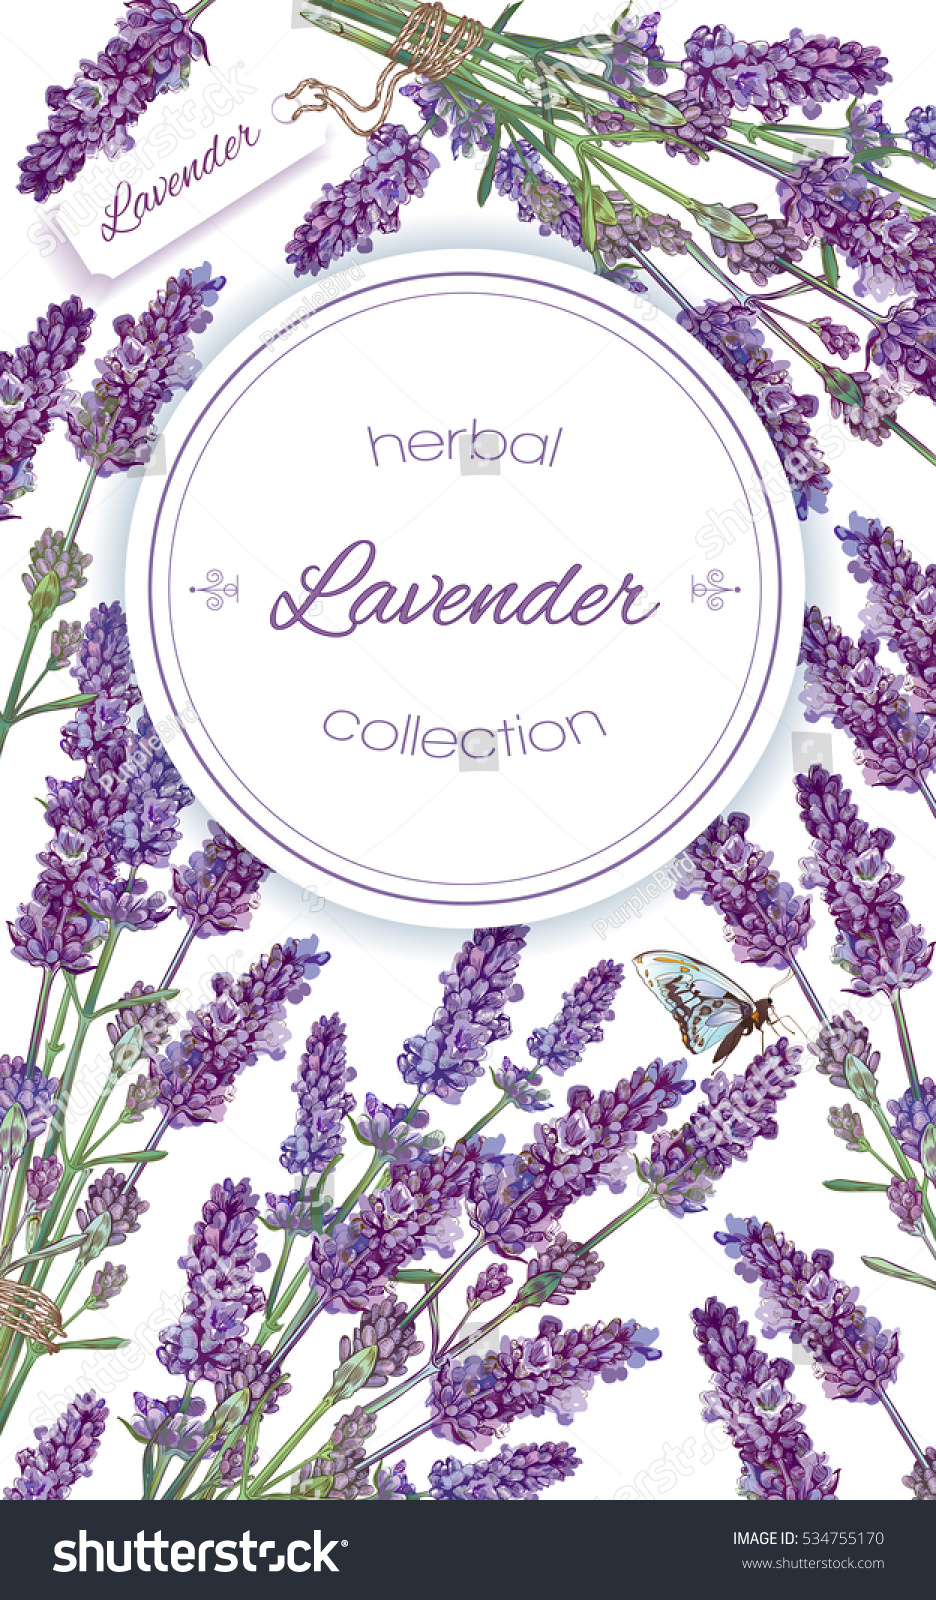 Vector lavender flower frame on white background Design for natural cosmetic health care products perfume Can be used as greeting card or wedding invitation